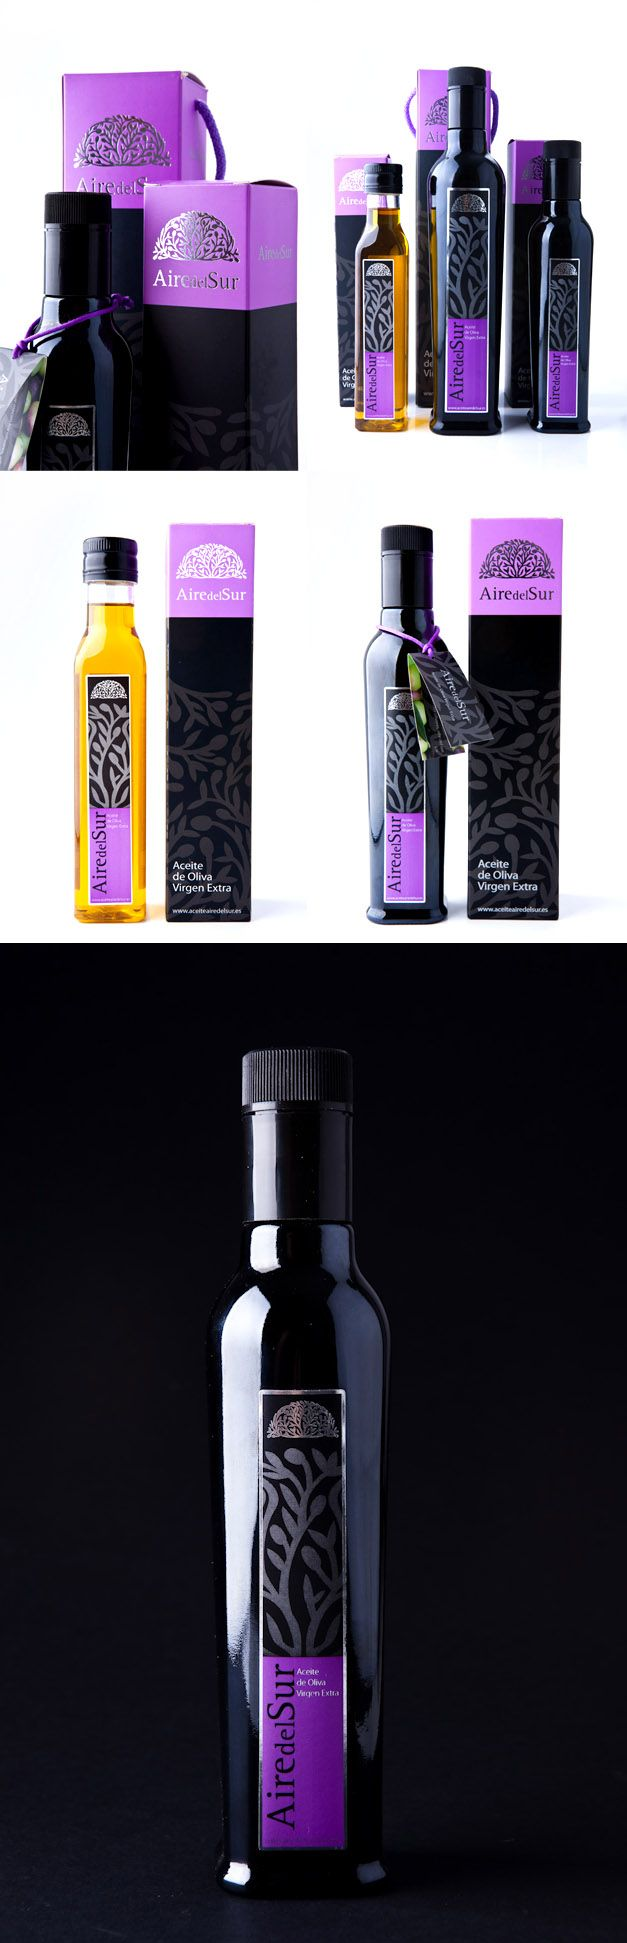 Love this olive oil packaging with fab colors PD